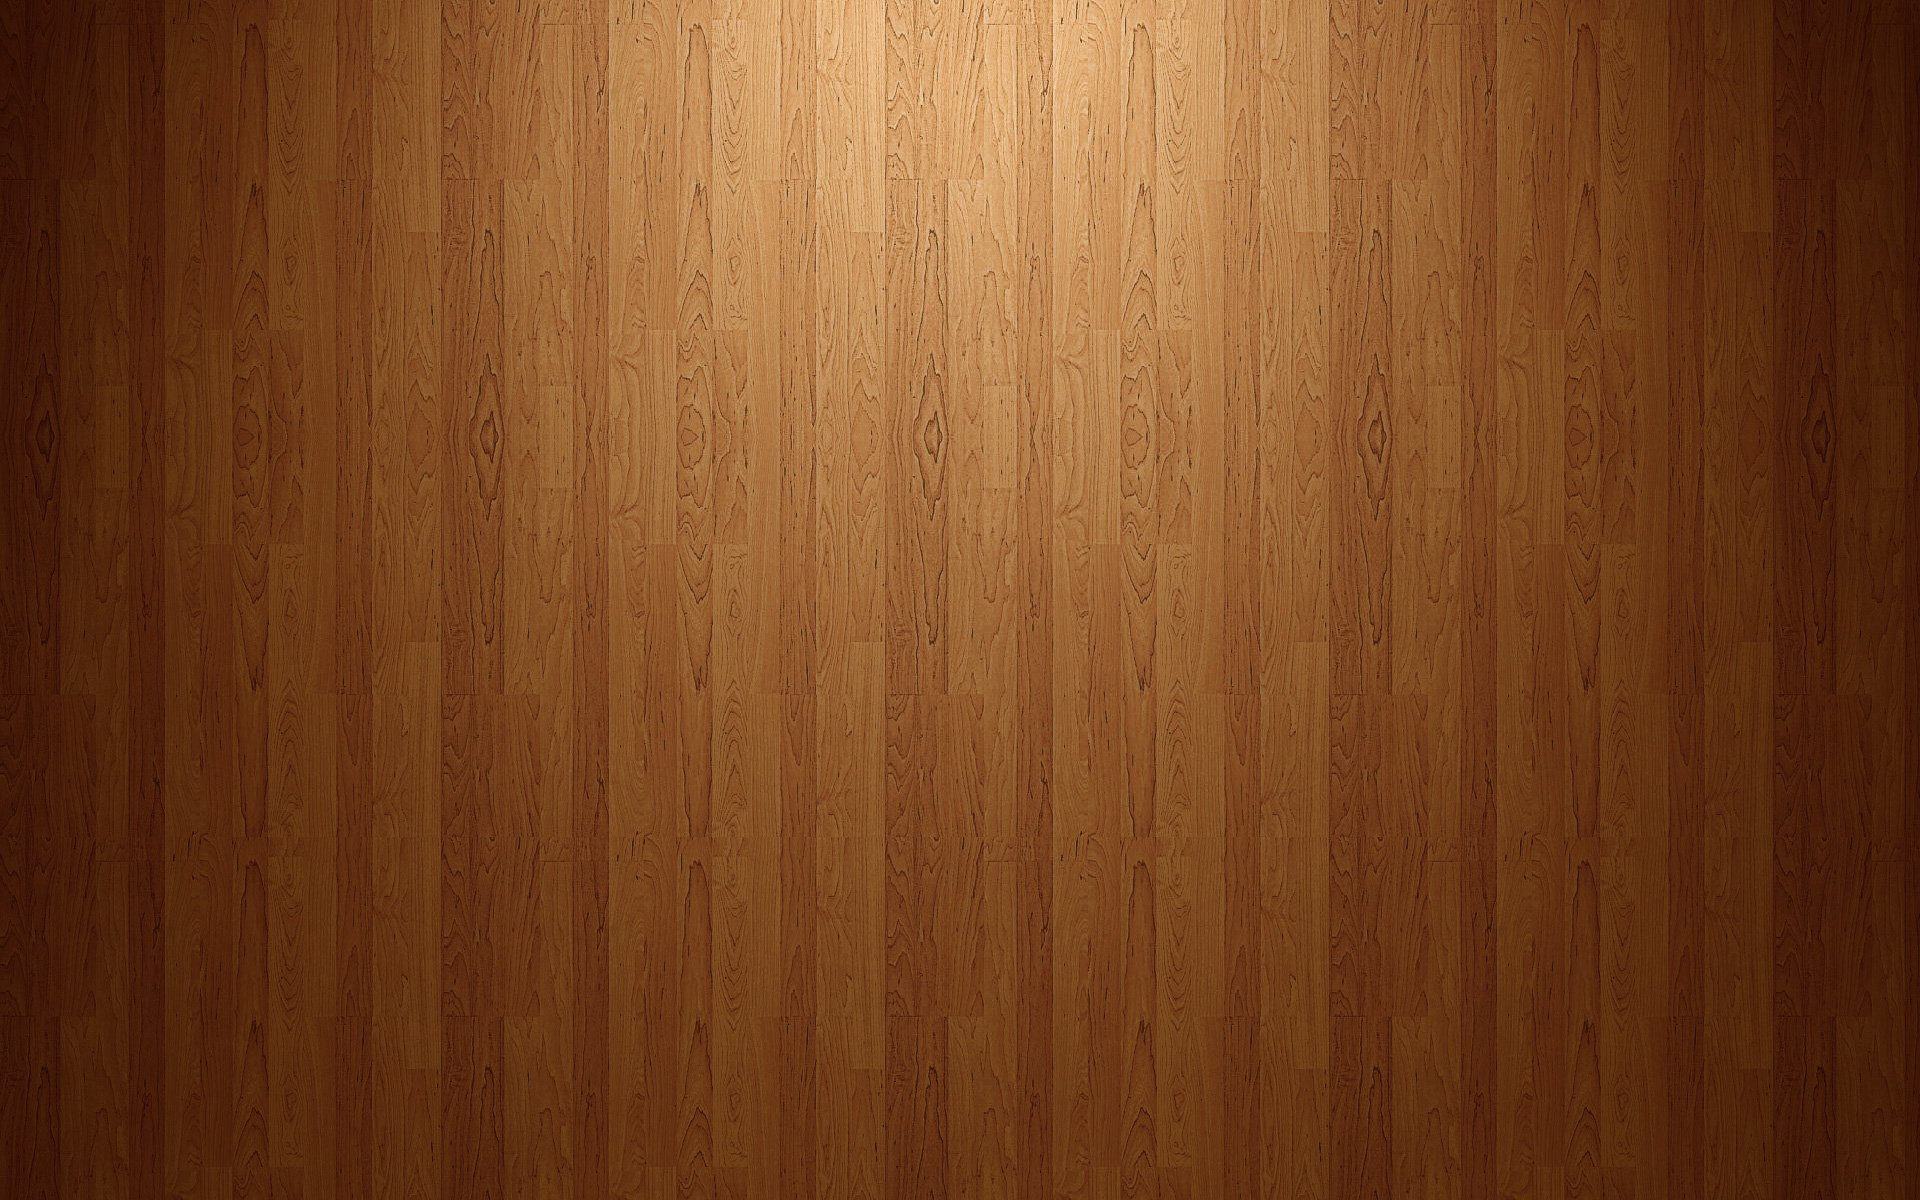 195 Wood HD Wallpapers   Background Images   Wallpaper Abyss HD Wallpaper   Background Image ID 8